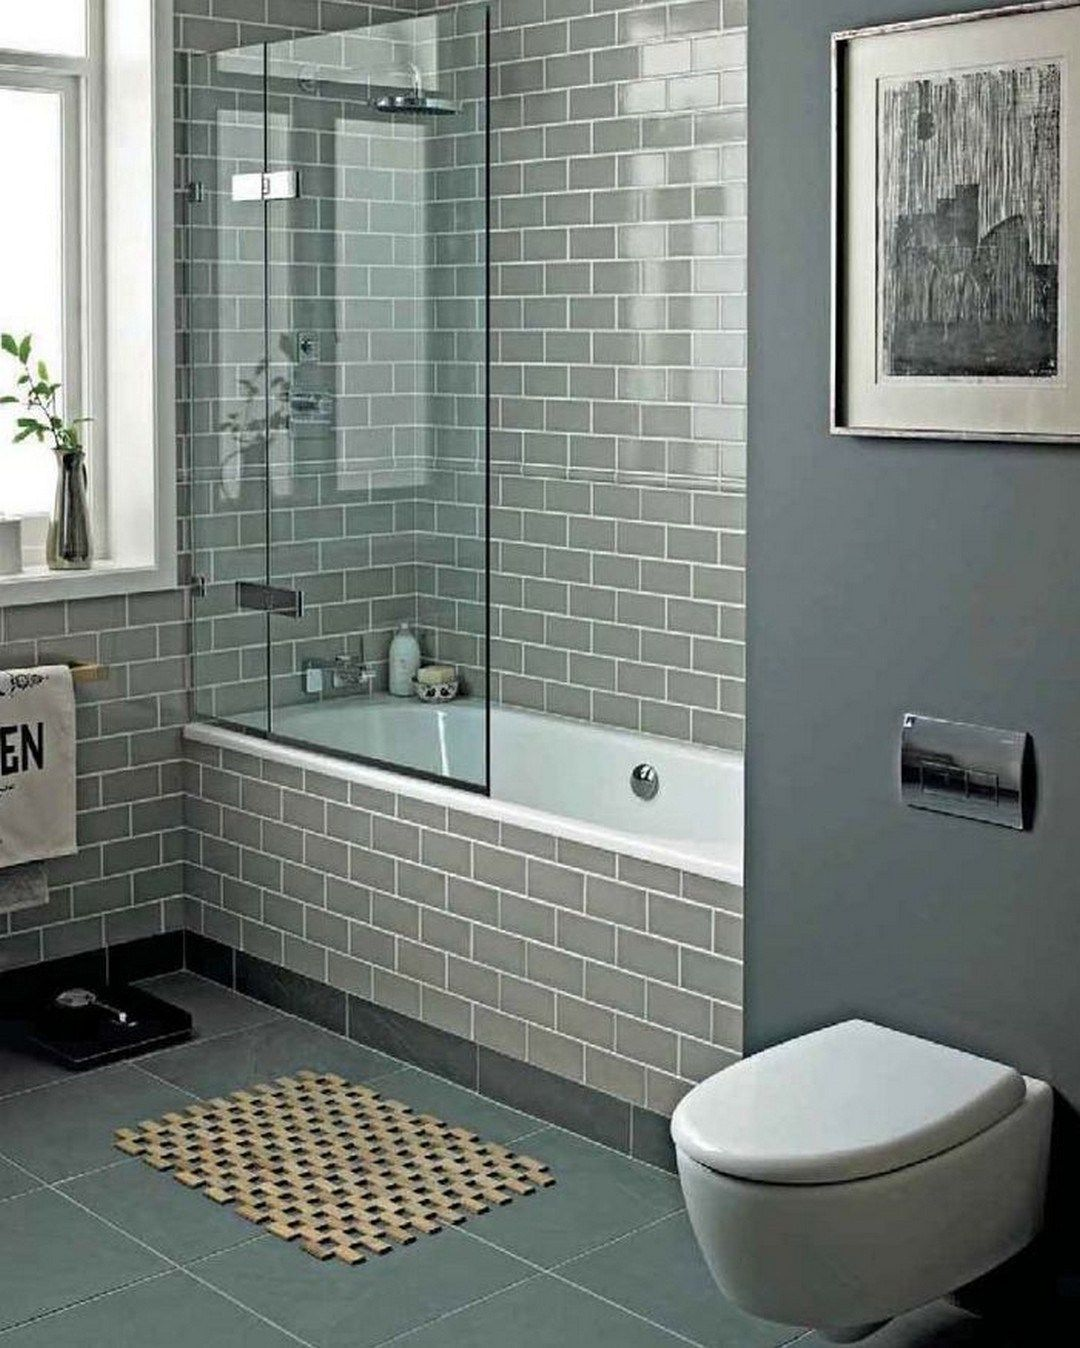 Small Bathroom Tub And Shower Combo: 99 Small Bathroom Tub Shower Combo Remodeling Ideas (79